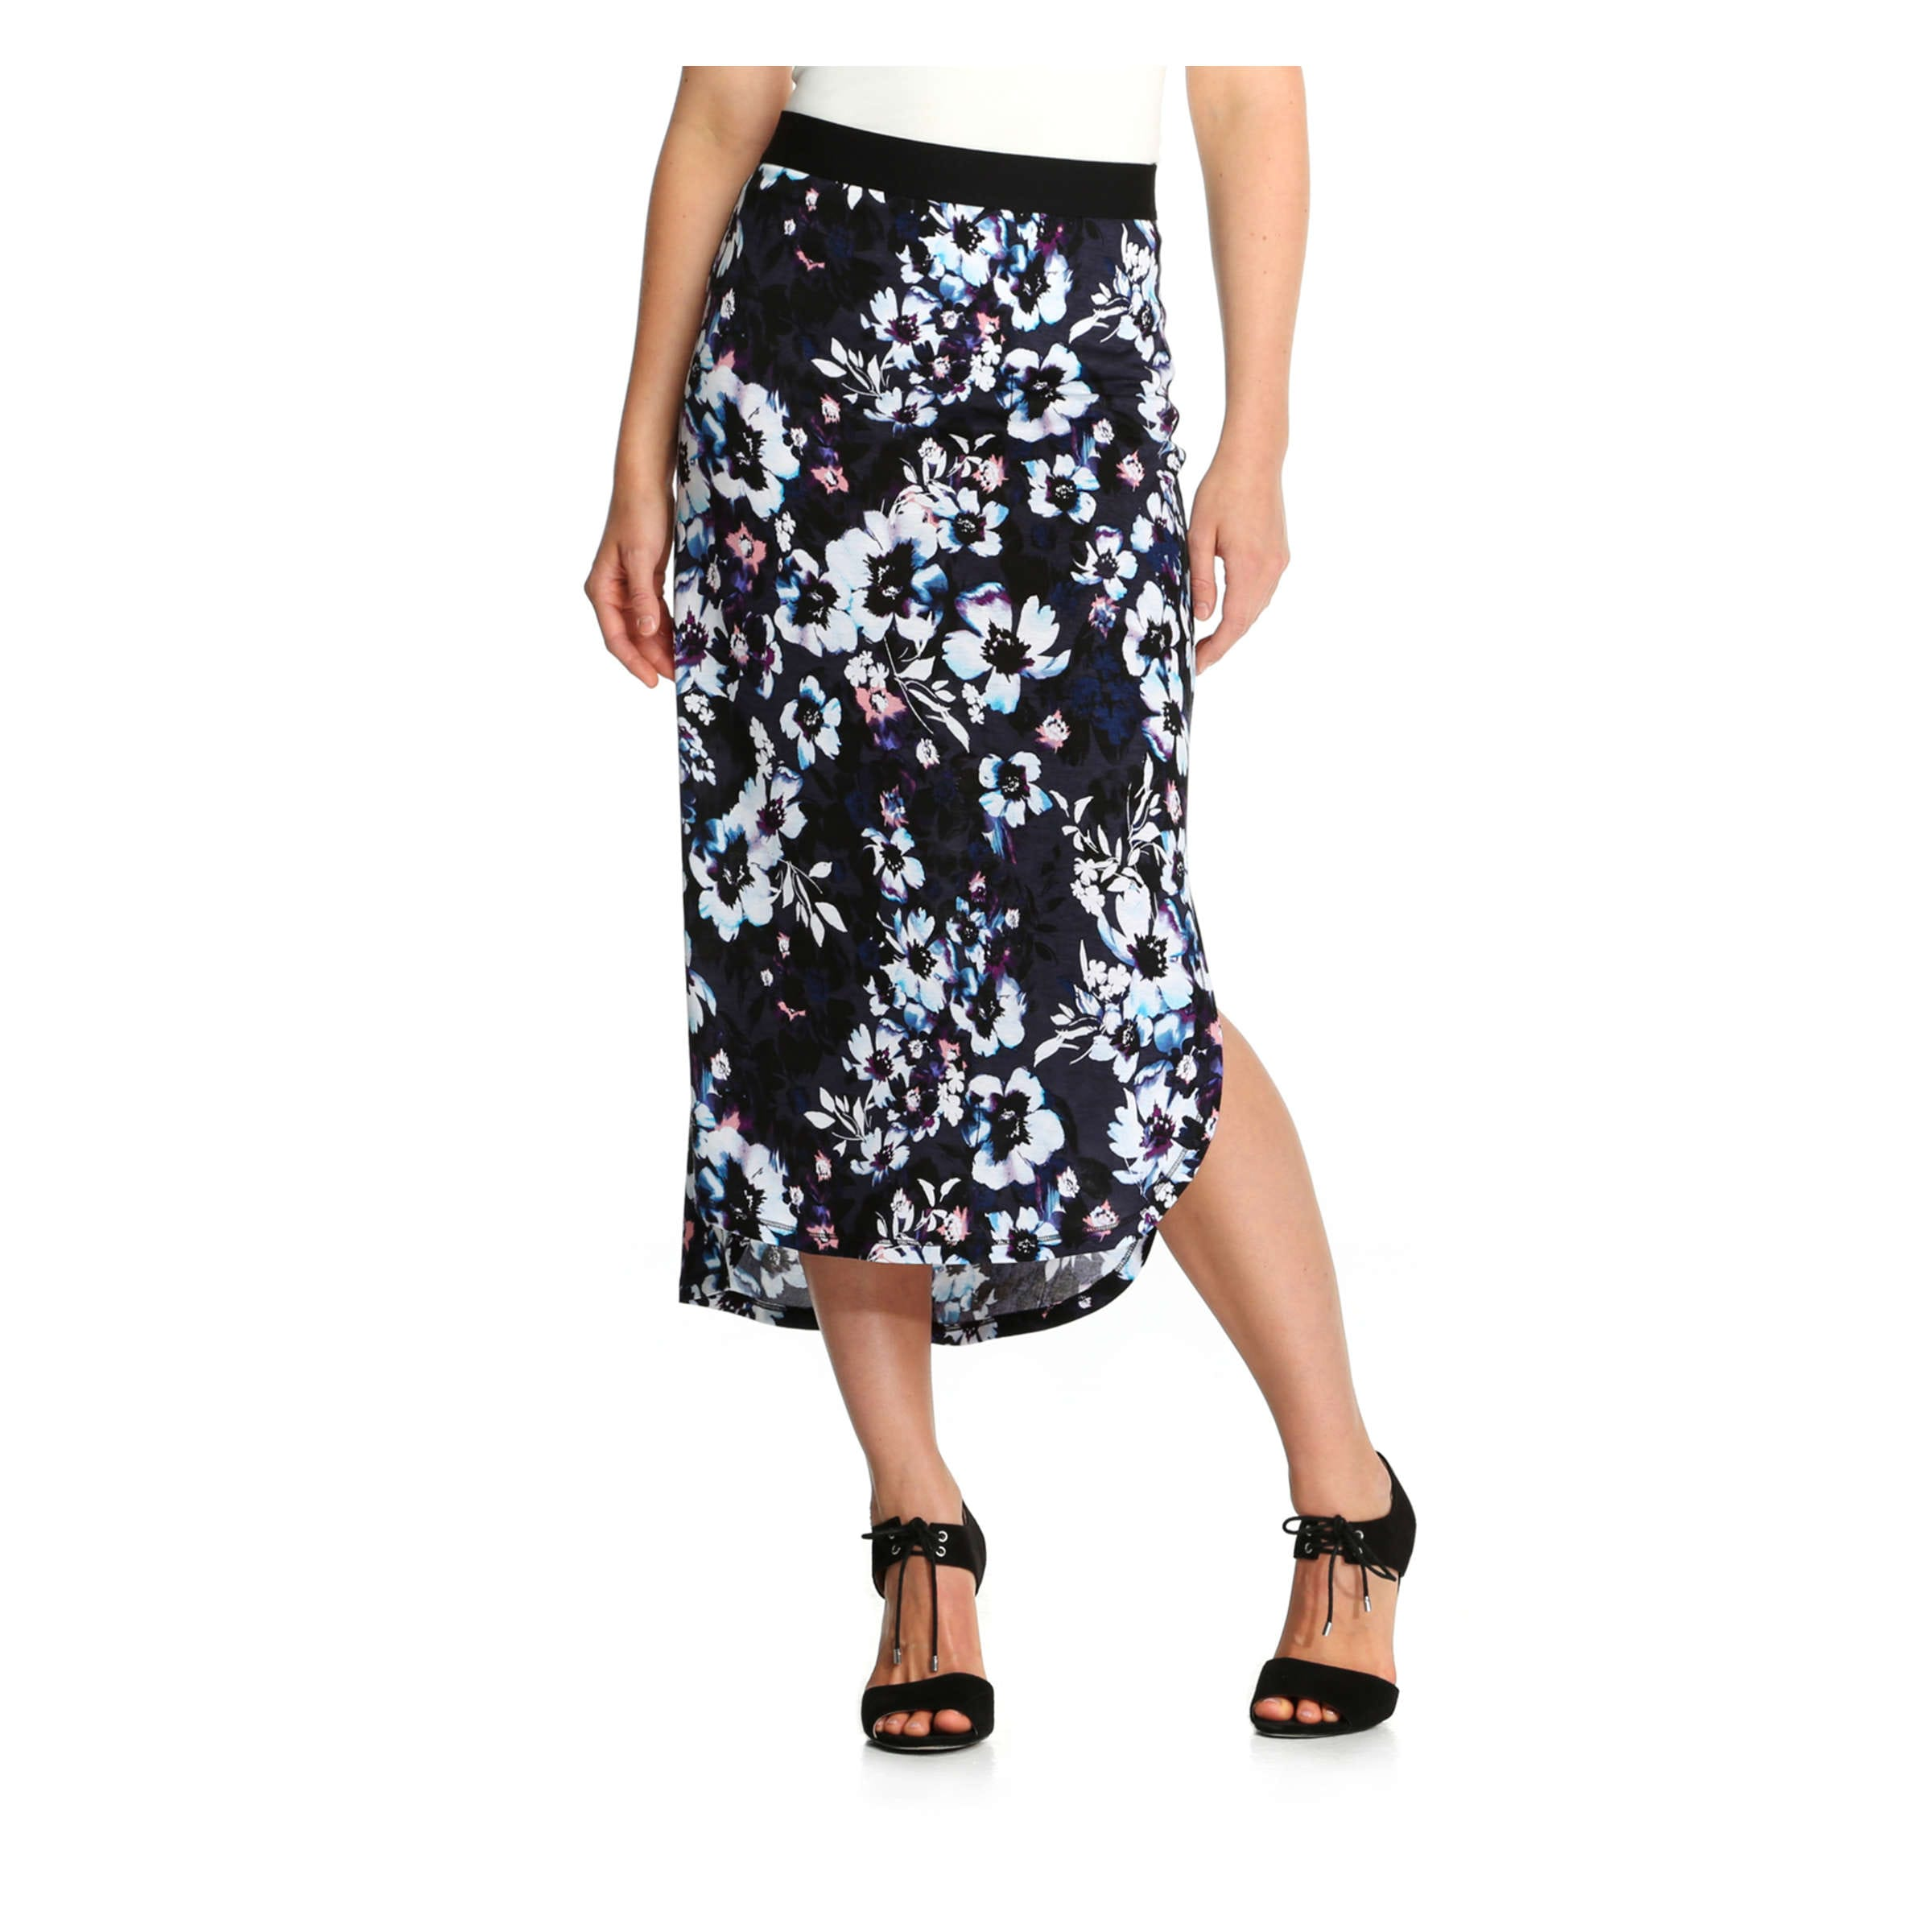 a98dccb998 Long Skirts With Slits Up The Side | Saddha